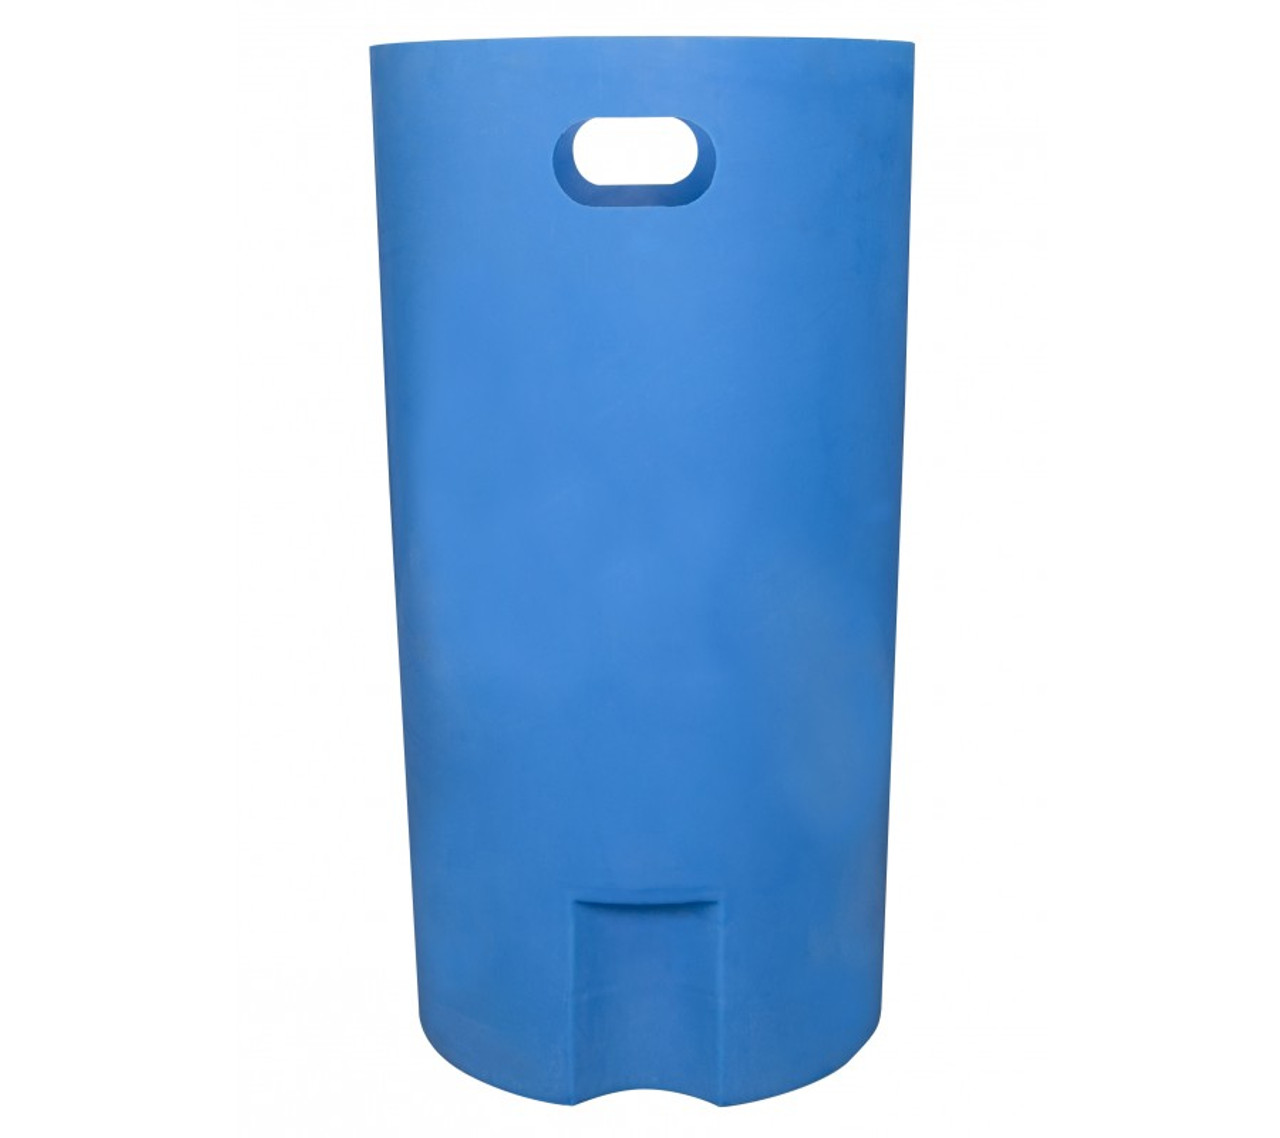 33 Gallon Plastic Liner 99-126-BLU for VCR-33 Recycle Bins